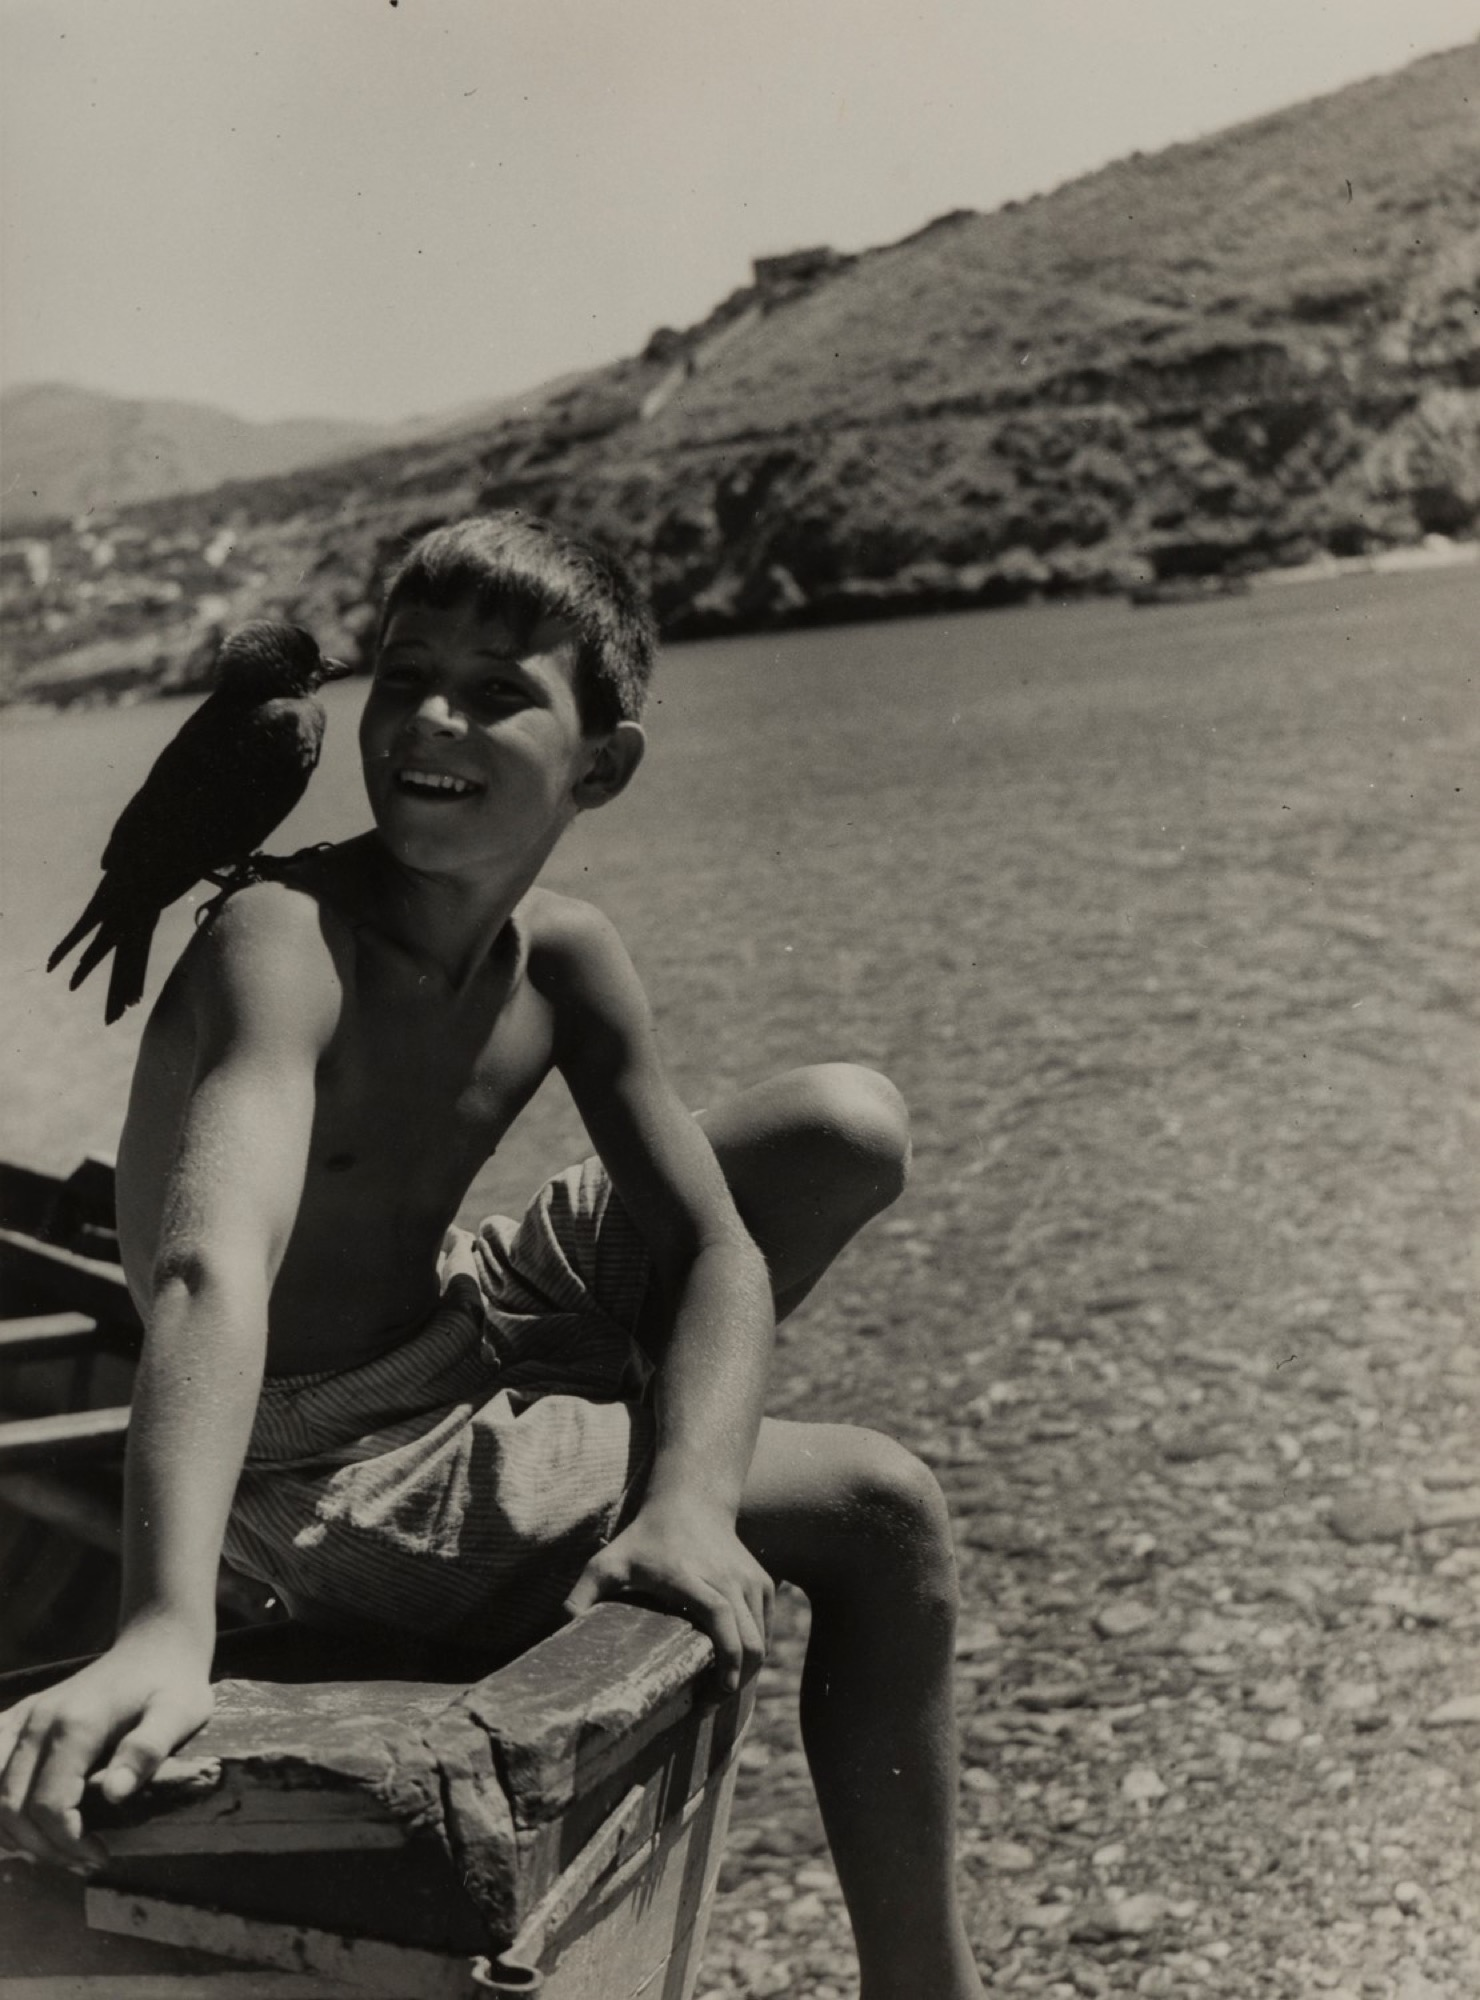 Giulio Parisio - Landscapes, years 1930/1940 - Eight vintage gelatin silver prints [...] - Image 7 of 9